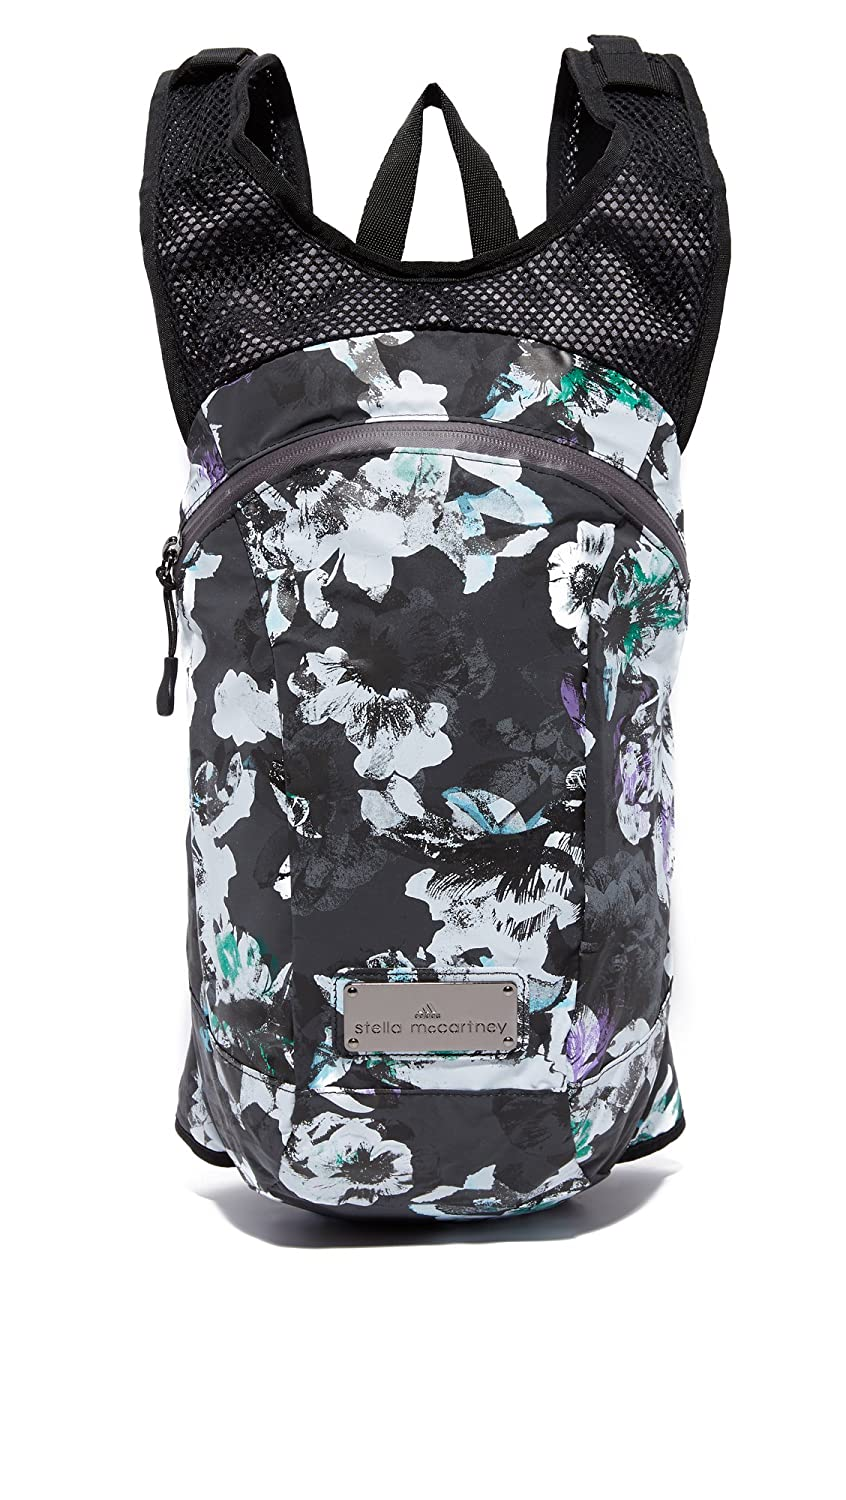 c00ca9308448 Amazon.com  adidas by Stella McCartney Women s Backpack